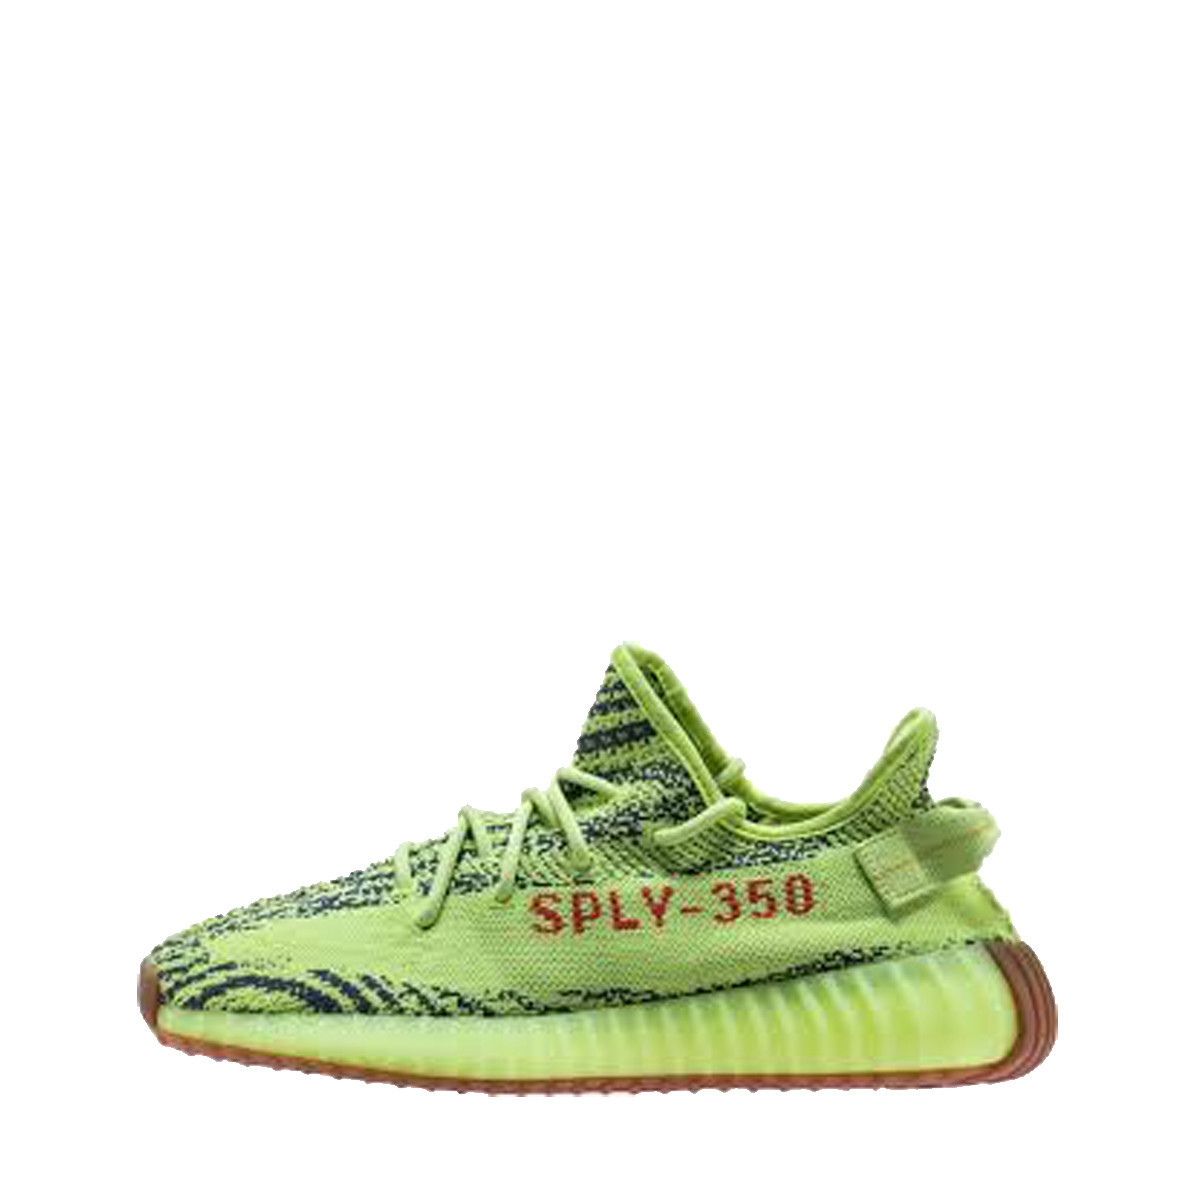 Basket adidas Originals YEEZY BOOST 350 V2 B37572